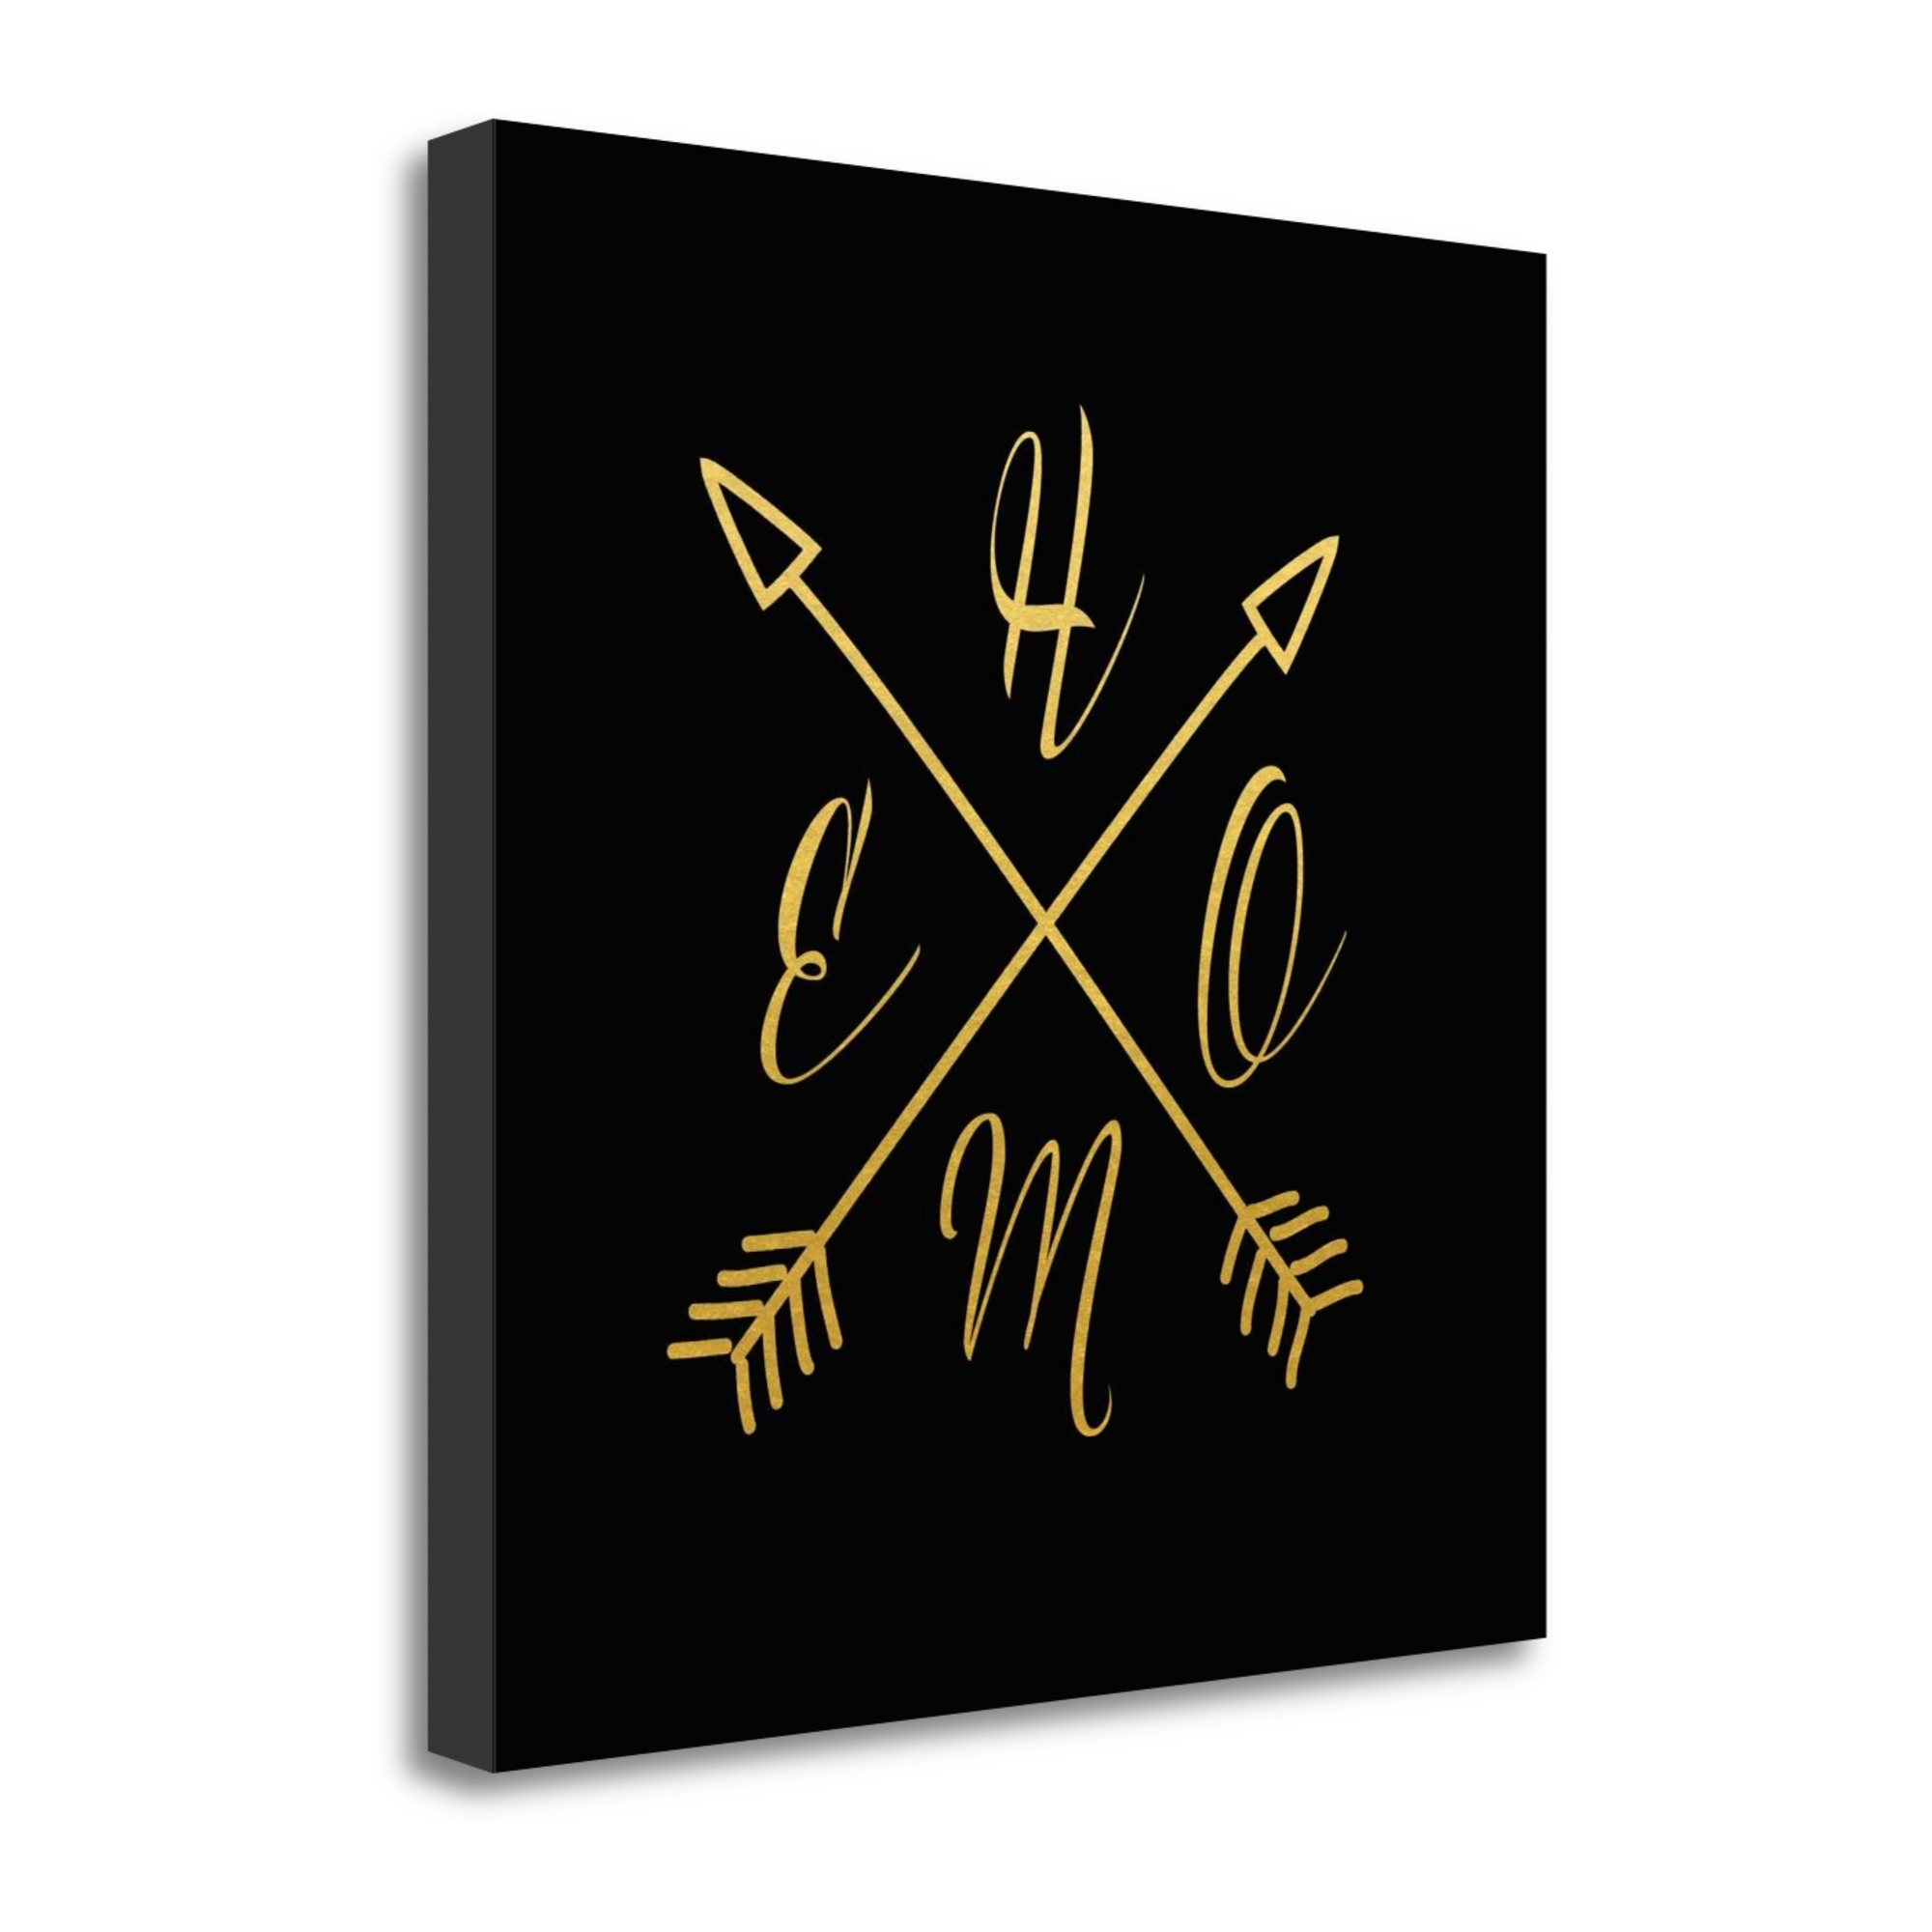 "Home Arrows By Tara Moss, 26"" x 26\"" Fine Art Giclee Print on Gallery Wrap Canvas, Ready to Hang"